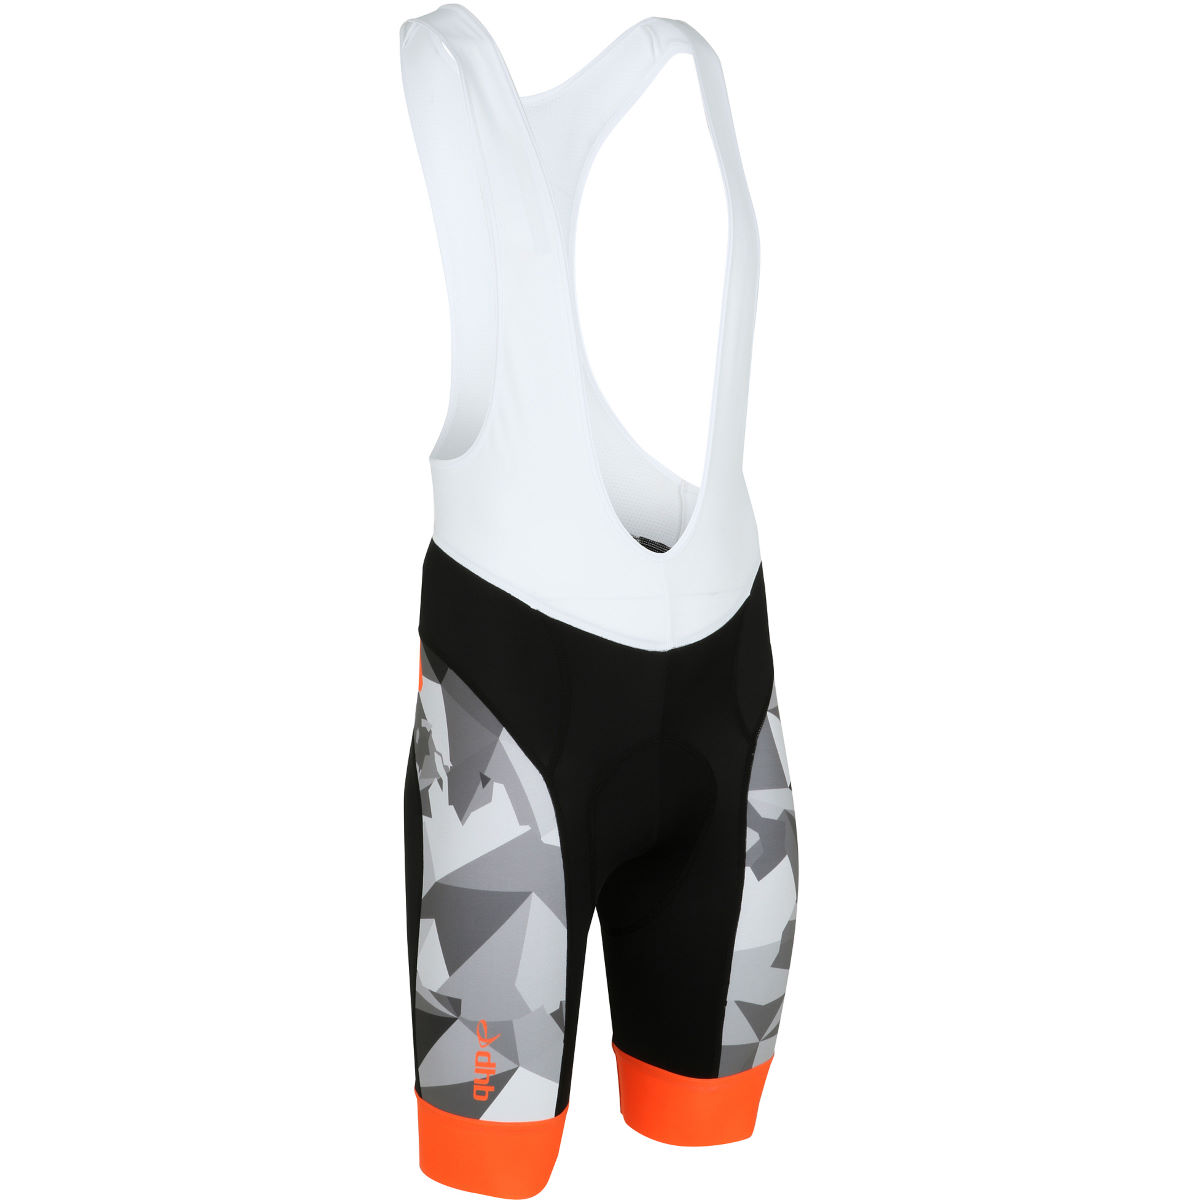 dhb Blok Camo Bib Short - Small Black/Orange | Lycra Cycling Shorts